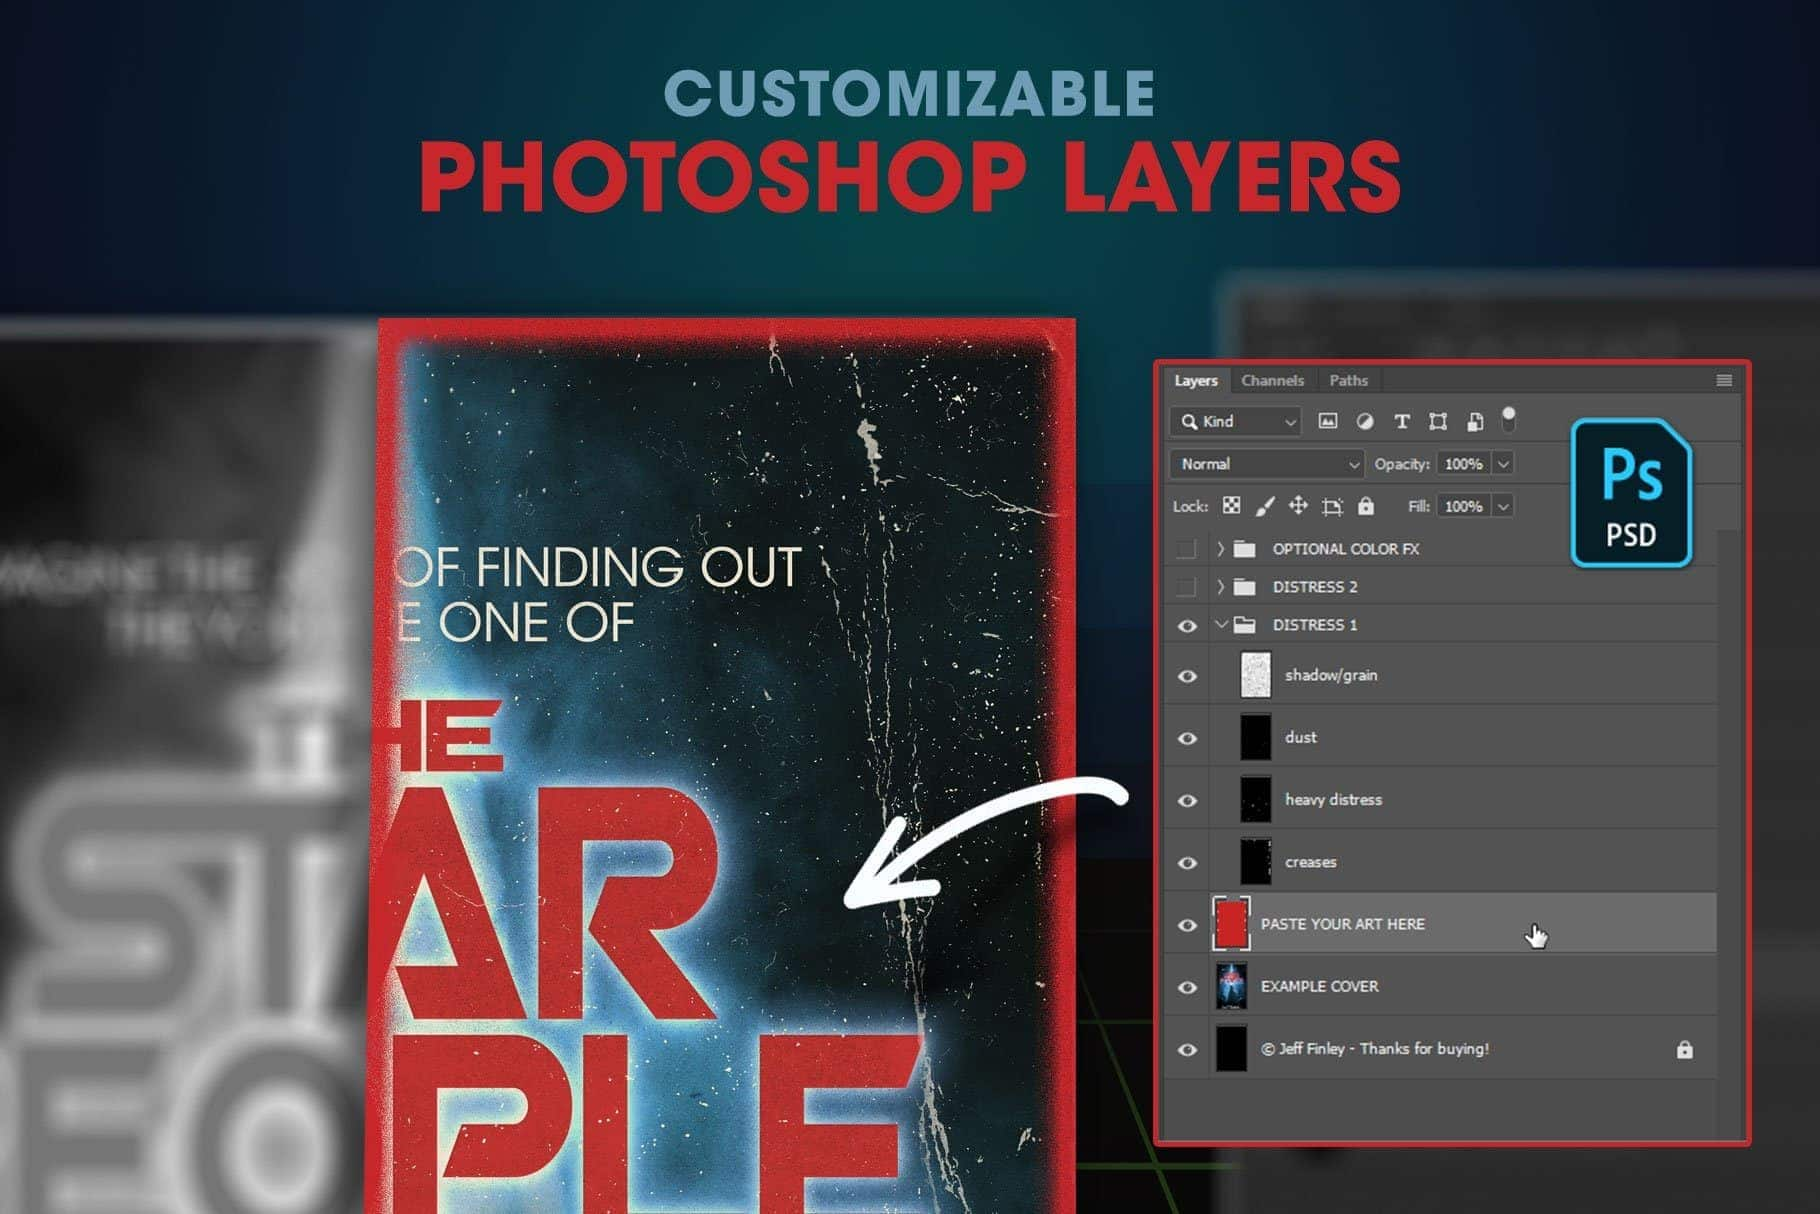 customizable photoshop layers for worn paperback textures